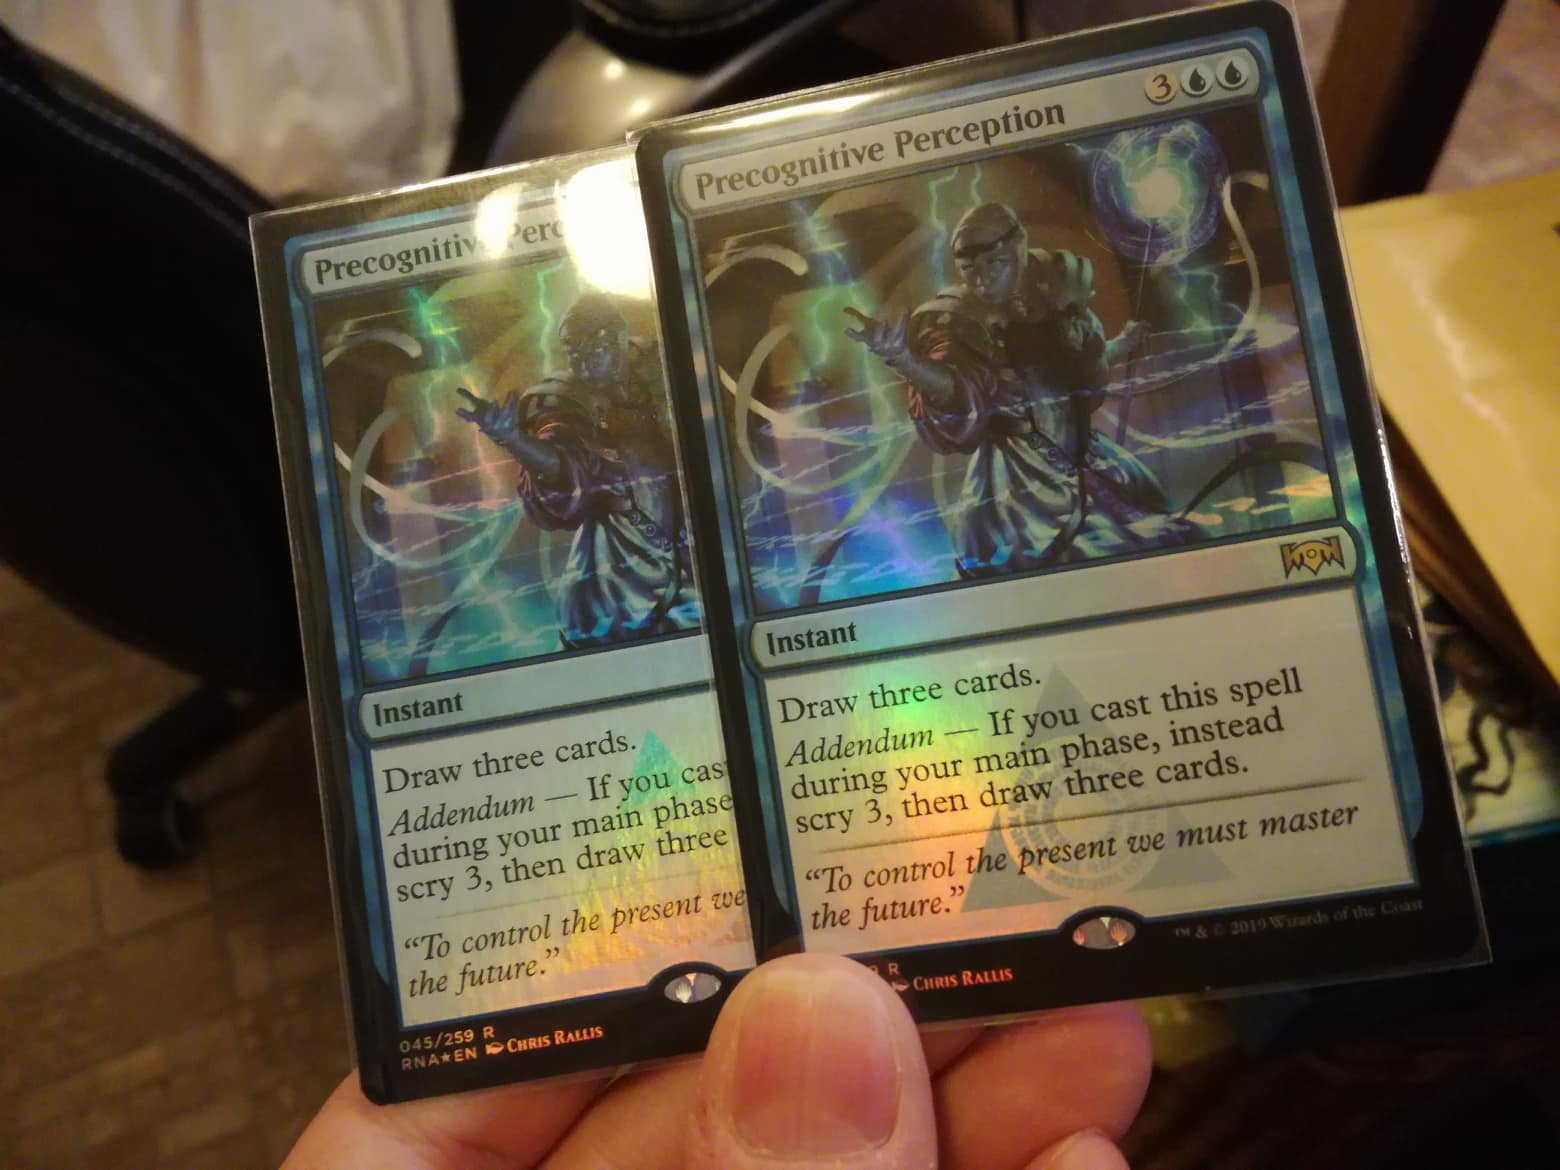 Two foil cards, side by side